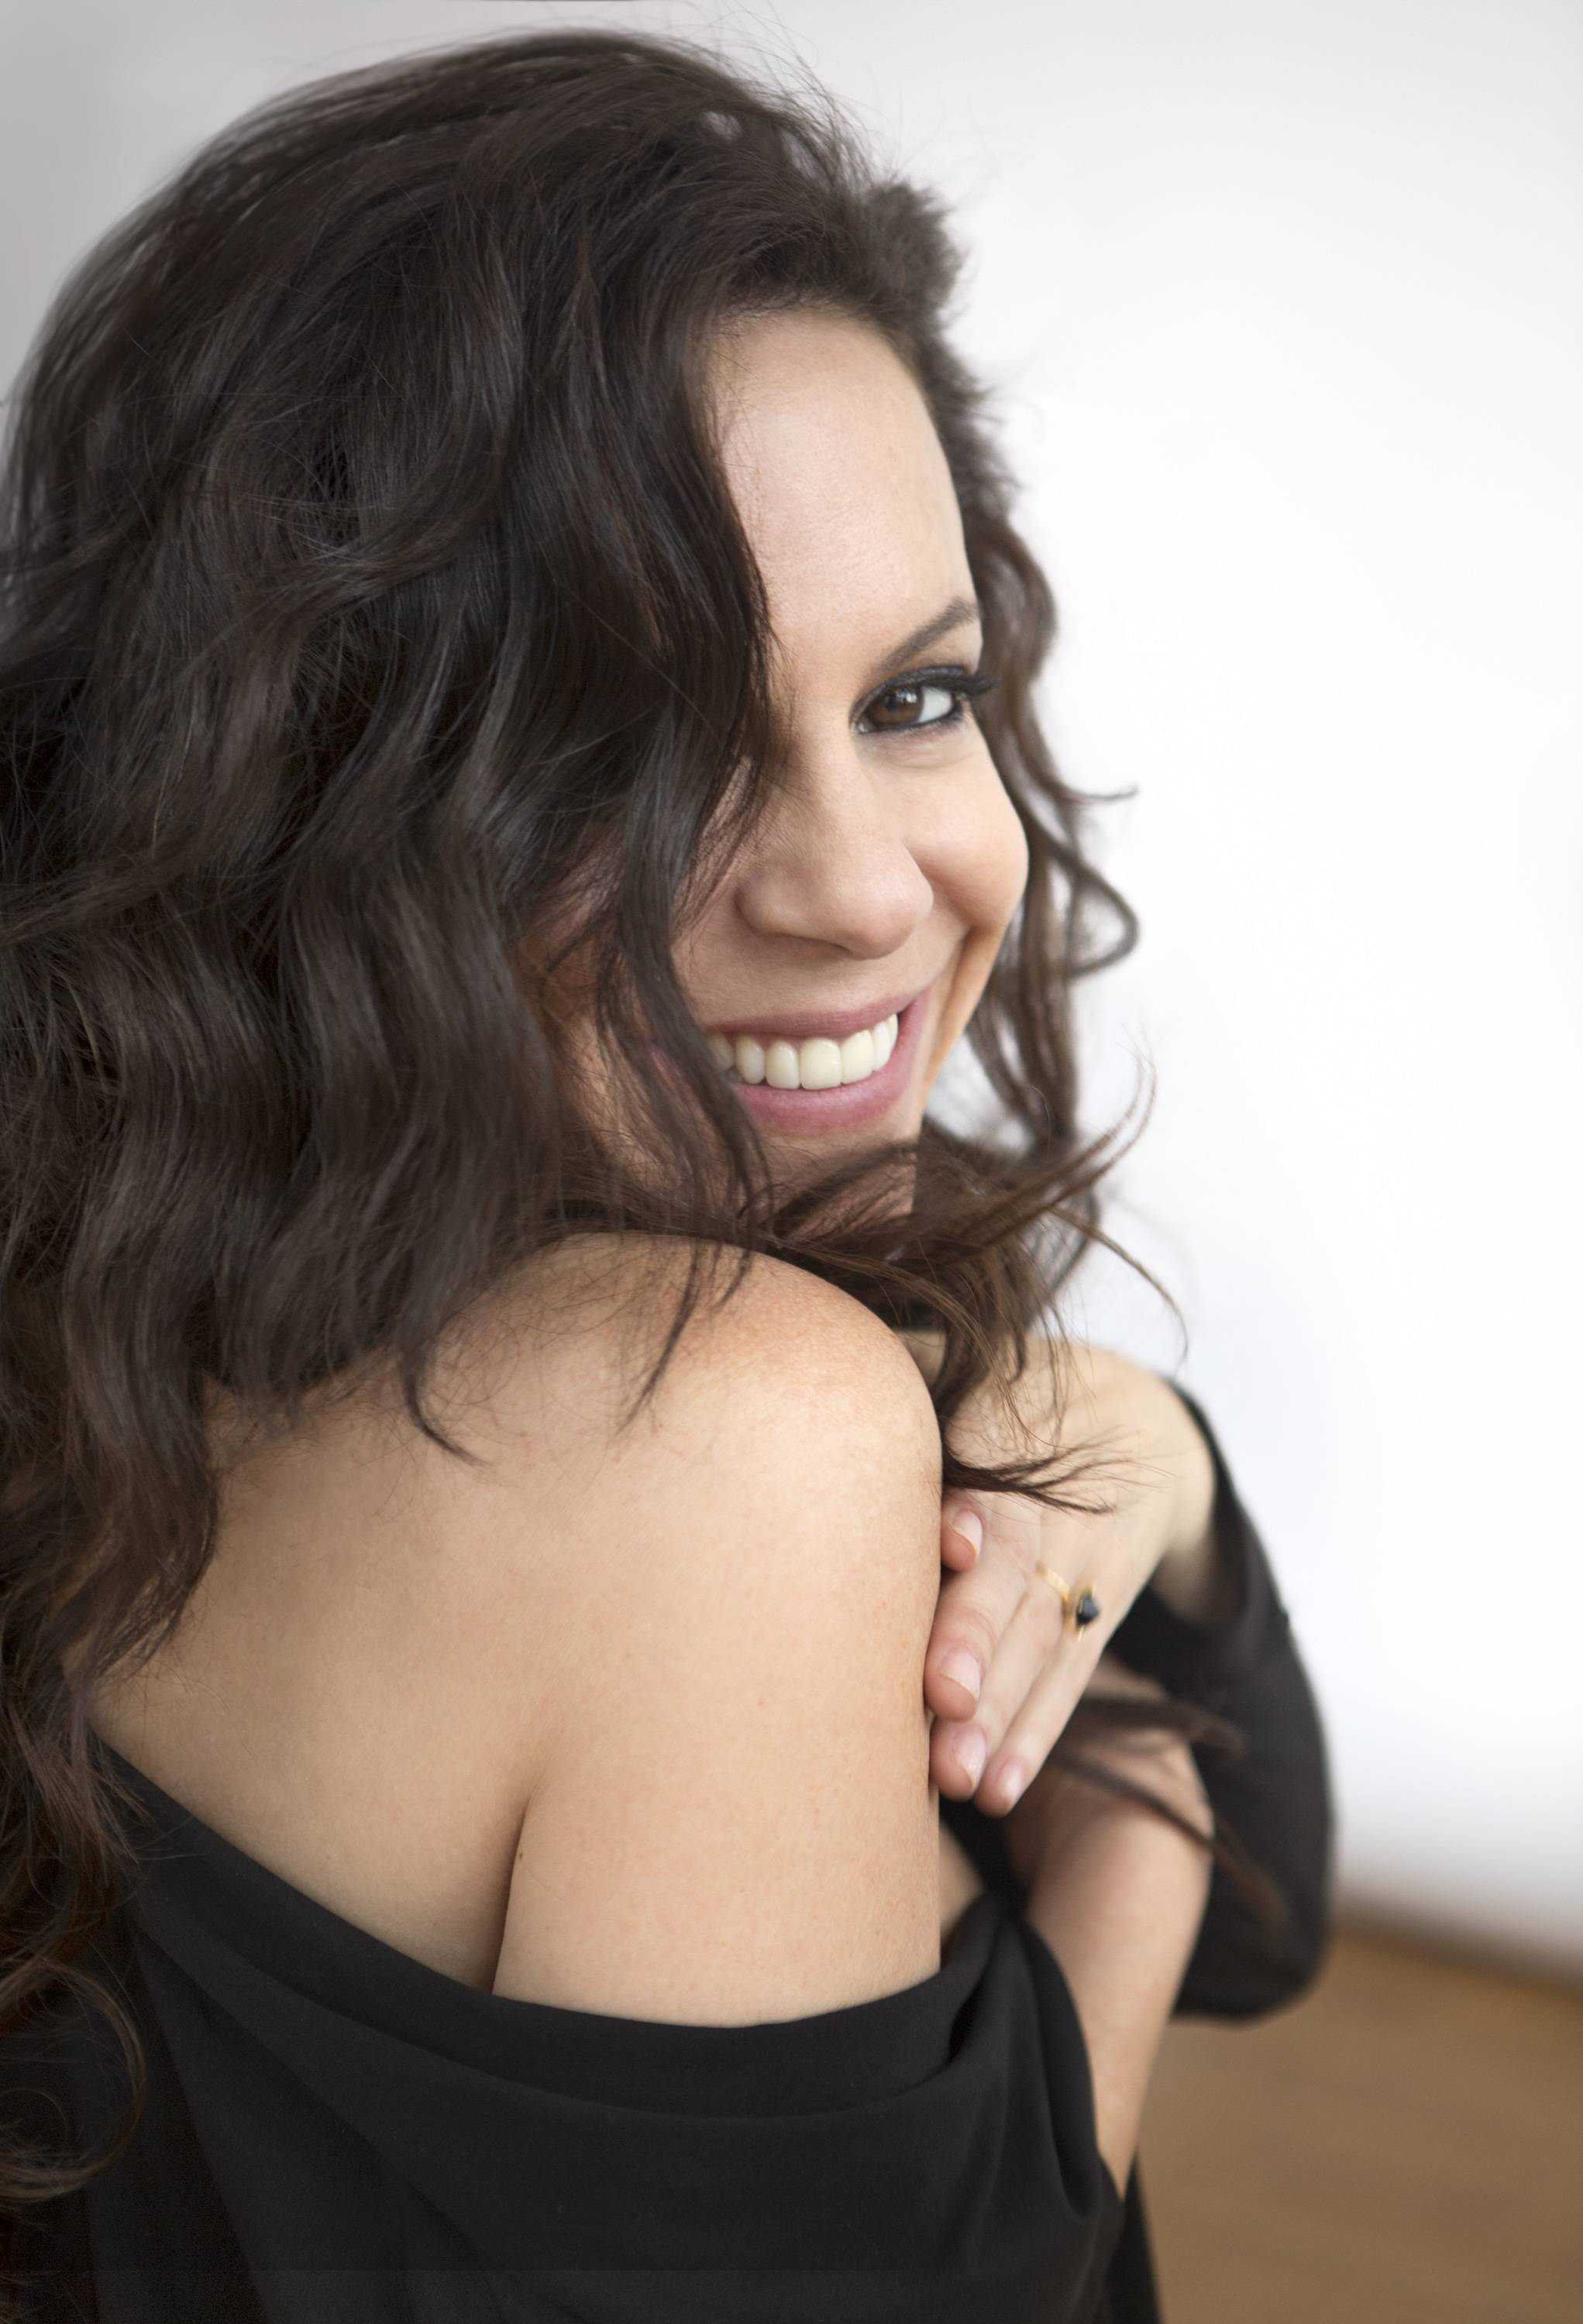 Bebel Gilberto, daughter of bossa nova giant Joao Gilberto, will perform at the fourth annual Brasil Summerfest in New York. Nearly 20 acts representing a cross section of Brazilian popular music will play at venues across the city.